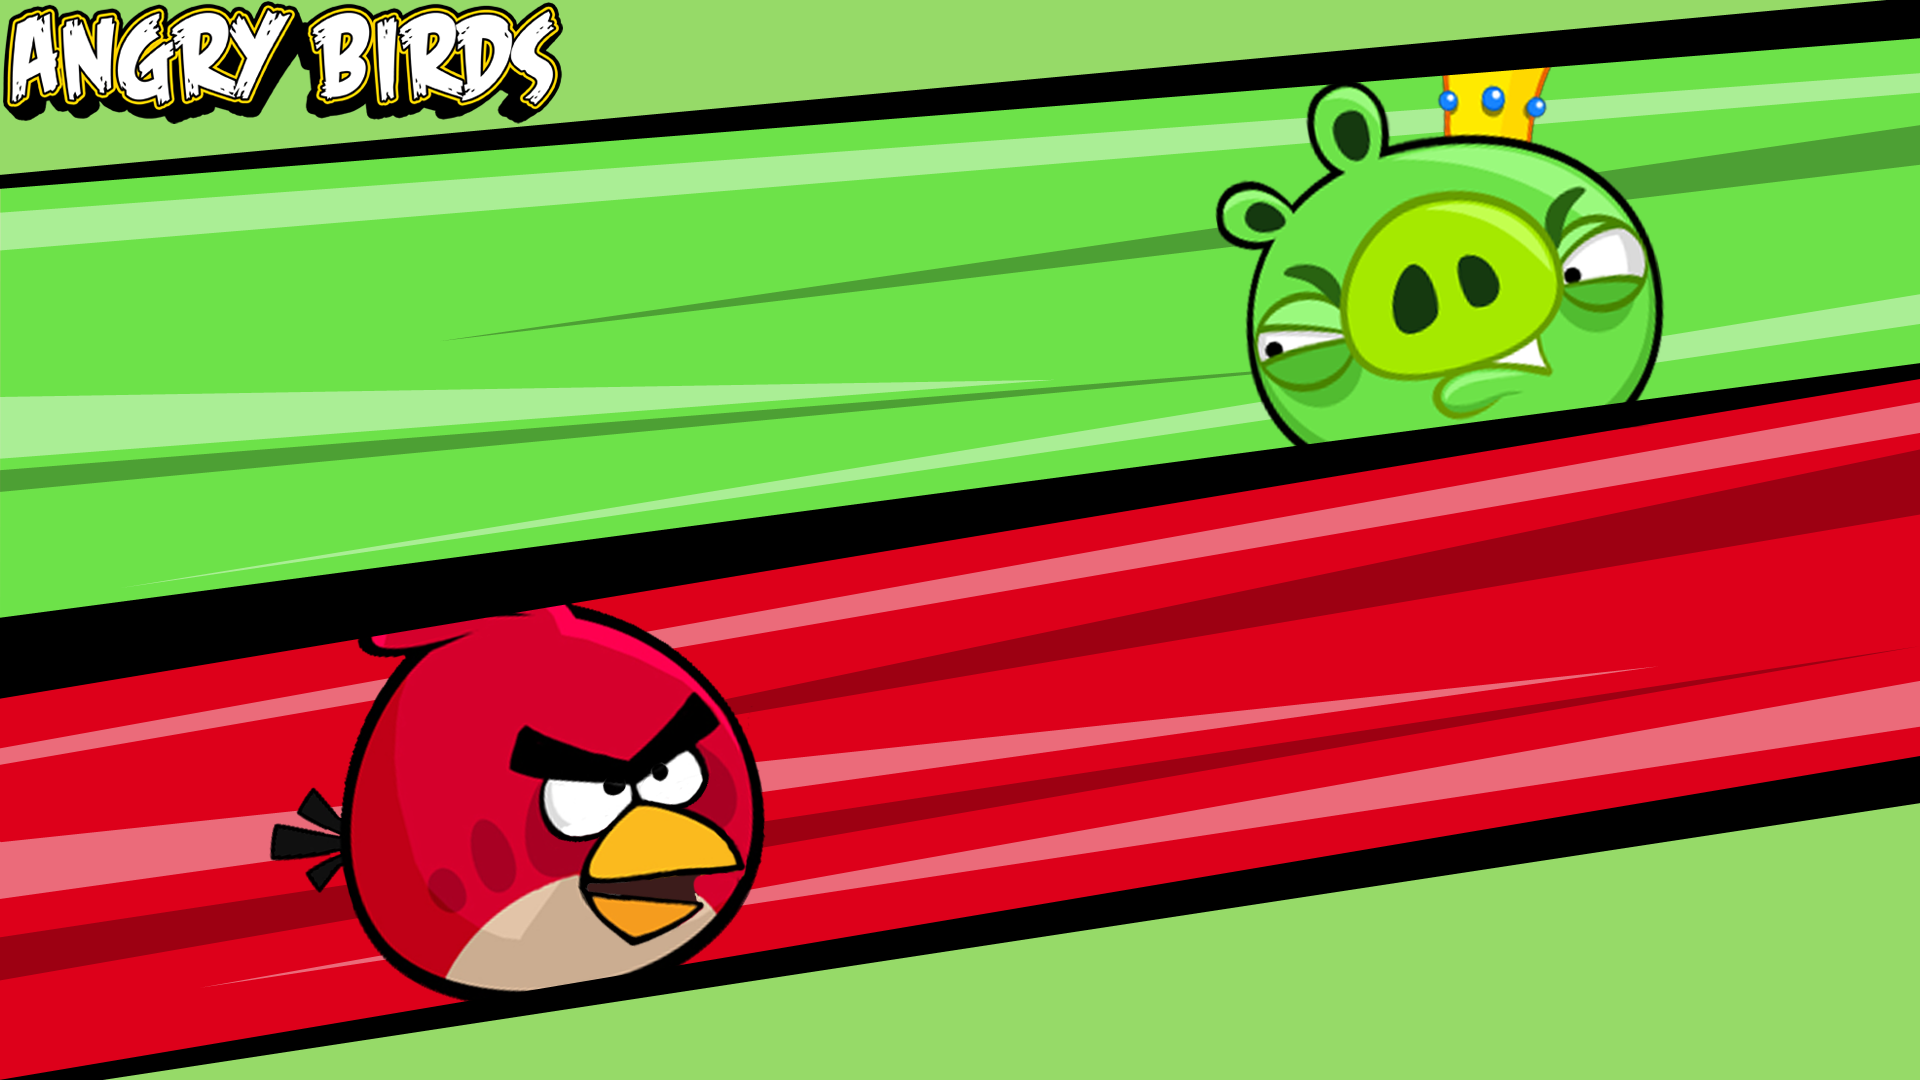 Angry birds wallpaper red by vyndo on deviantart angry birds wallpaper red by vyndo angry birds wallpaper red by vyndo voltagebd Images